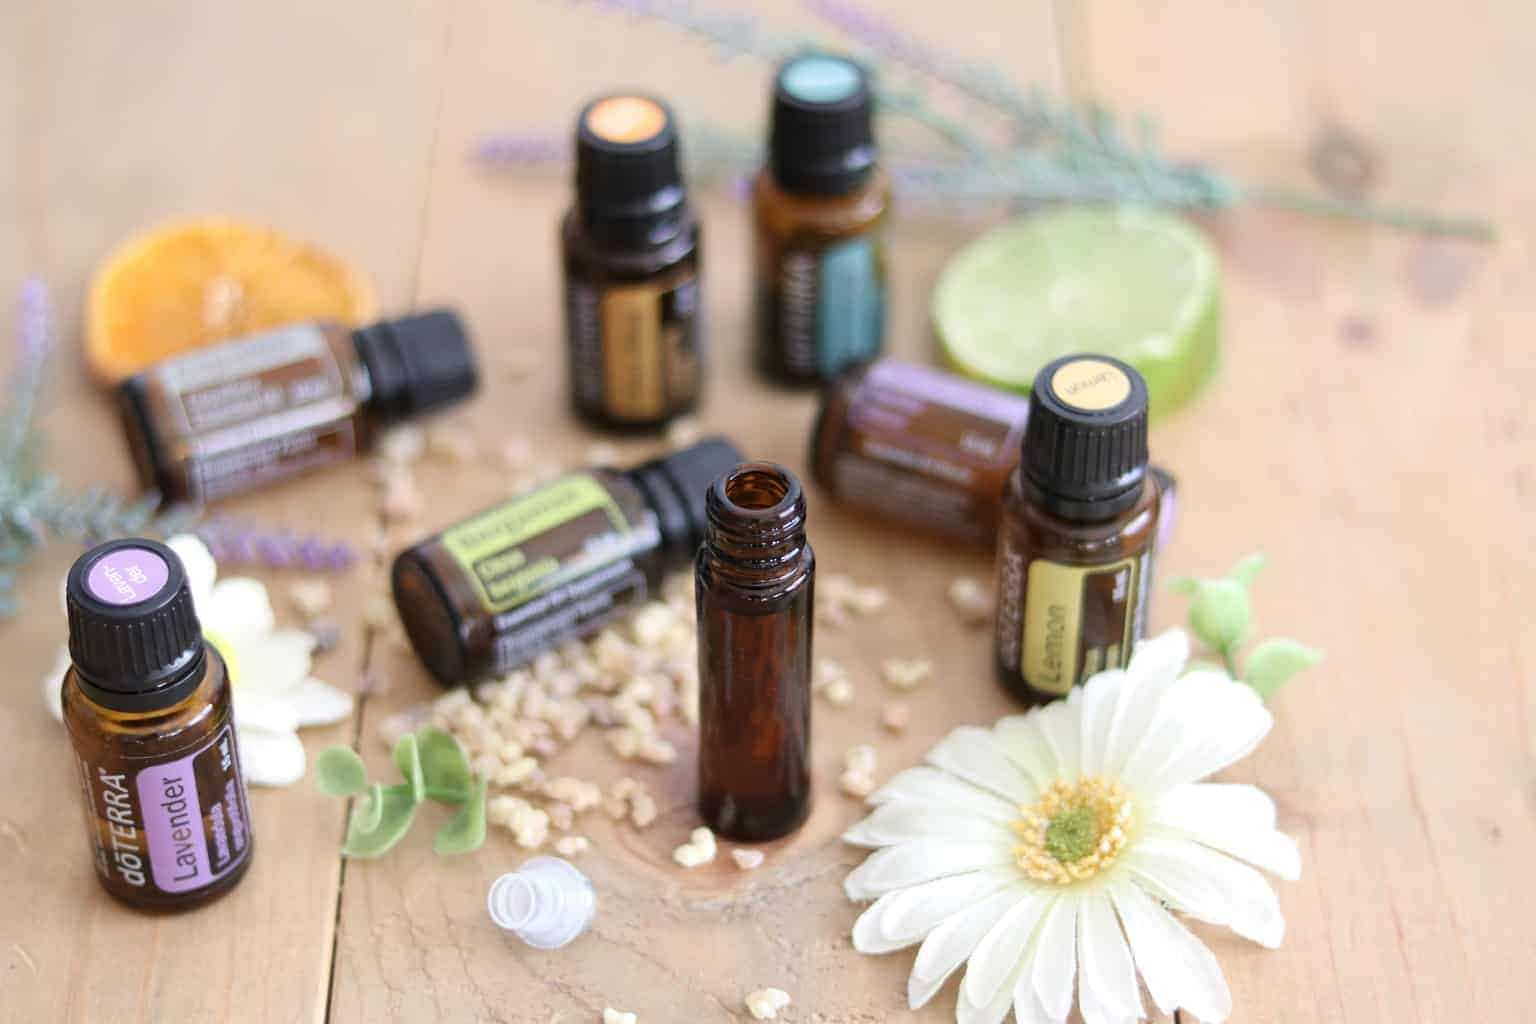 LEARN HOW TO MAKE THE ULTIMATE STRESS AND ANXIETY ROLLER BOTTLE. APPLYING ESSENTIAL OILS TOPICALLY CAN HELP WITH THE BODIES STRESS RESPONSE AND PROMOTE CALMNESS.